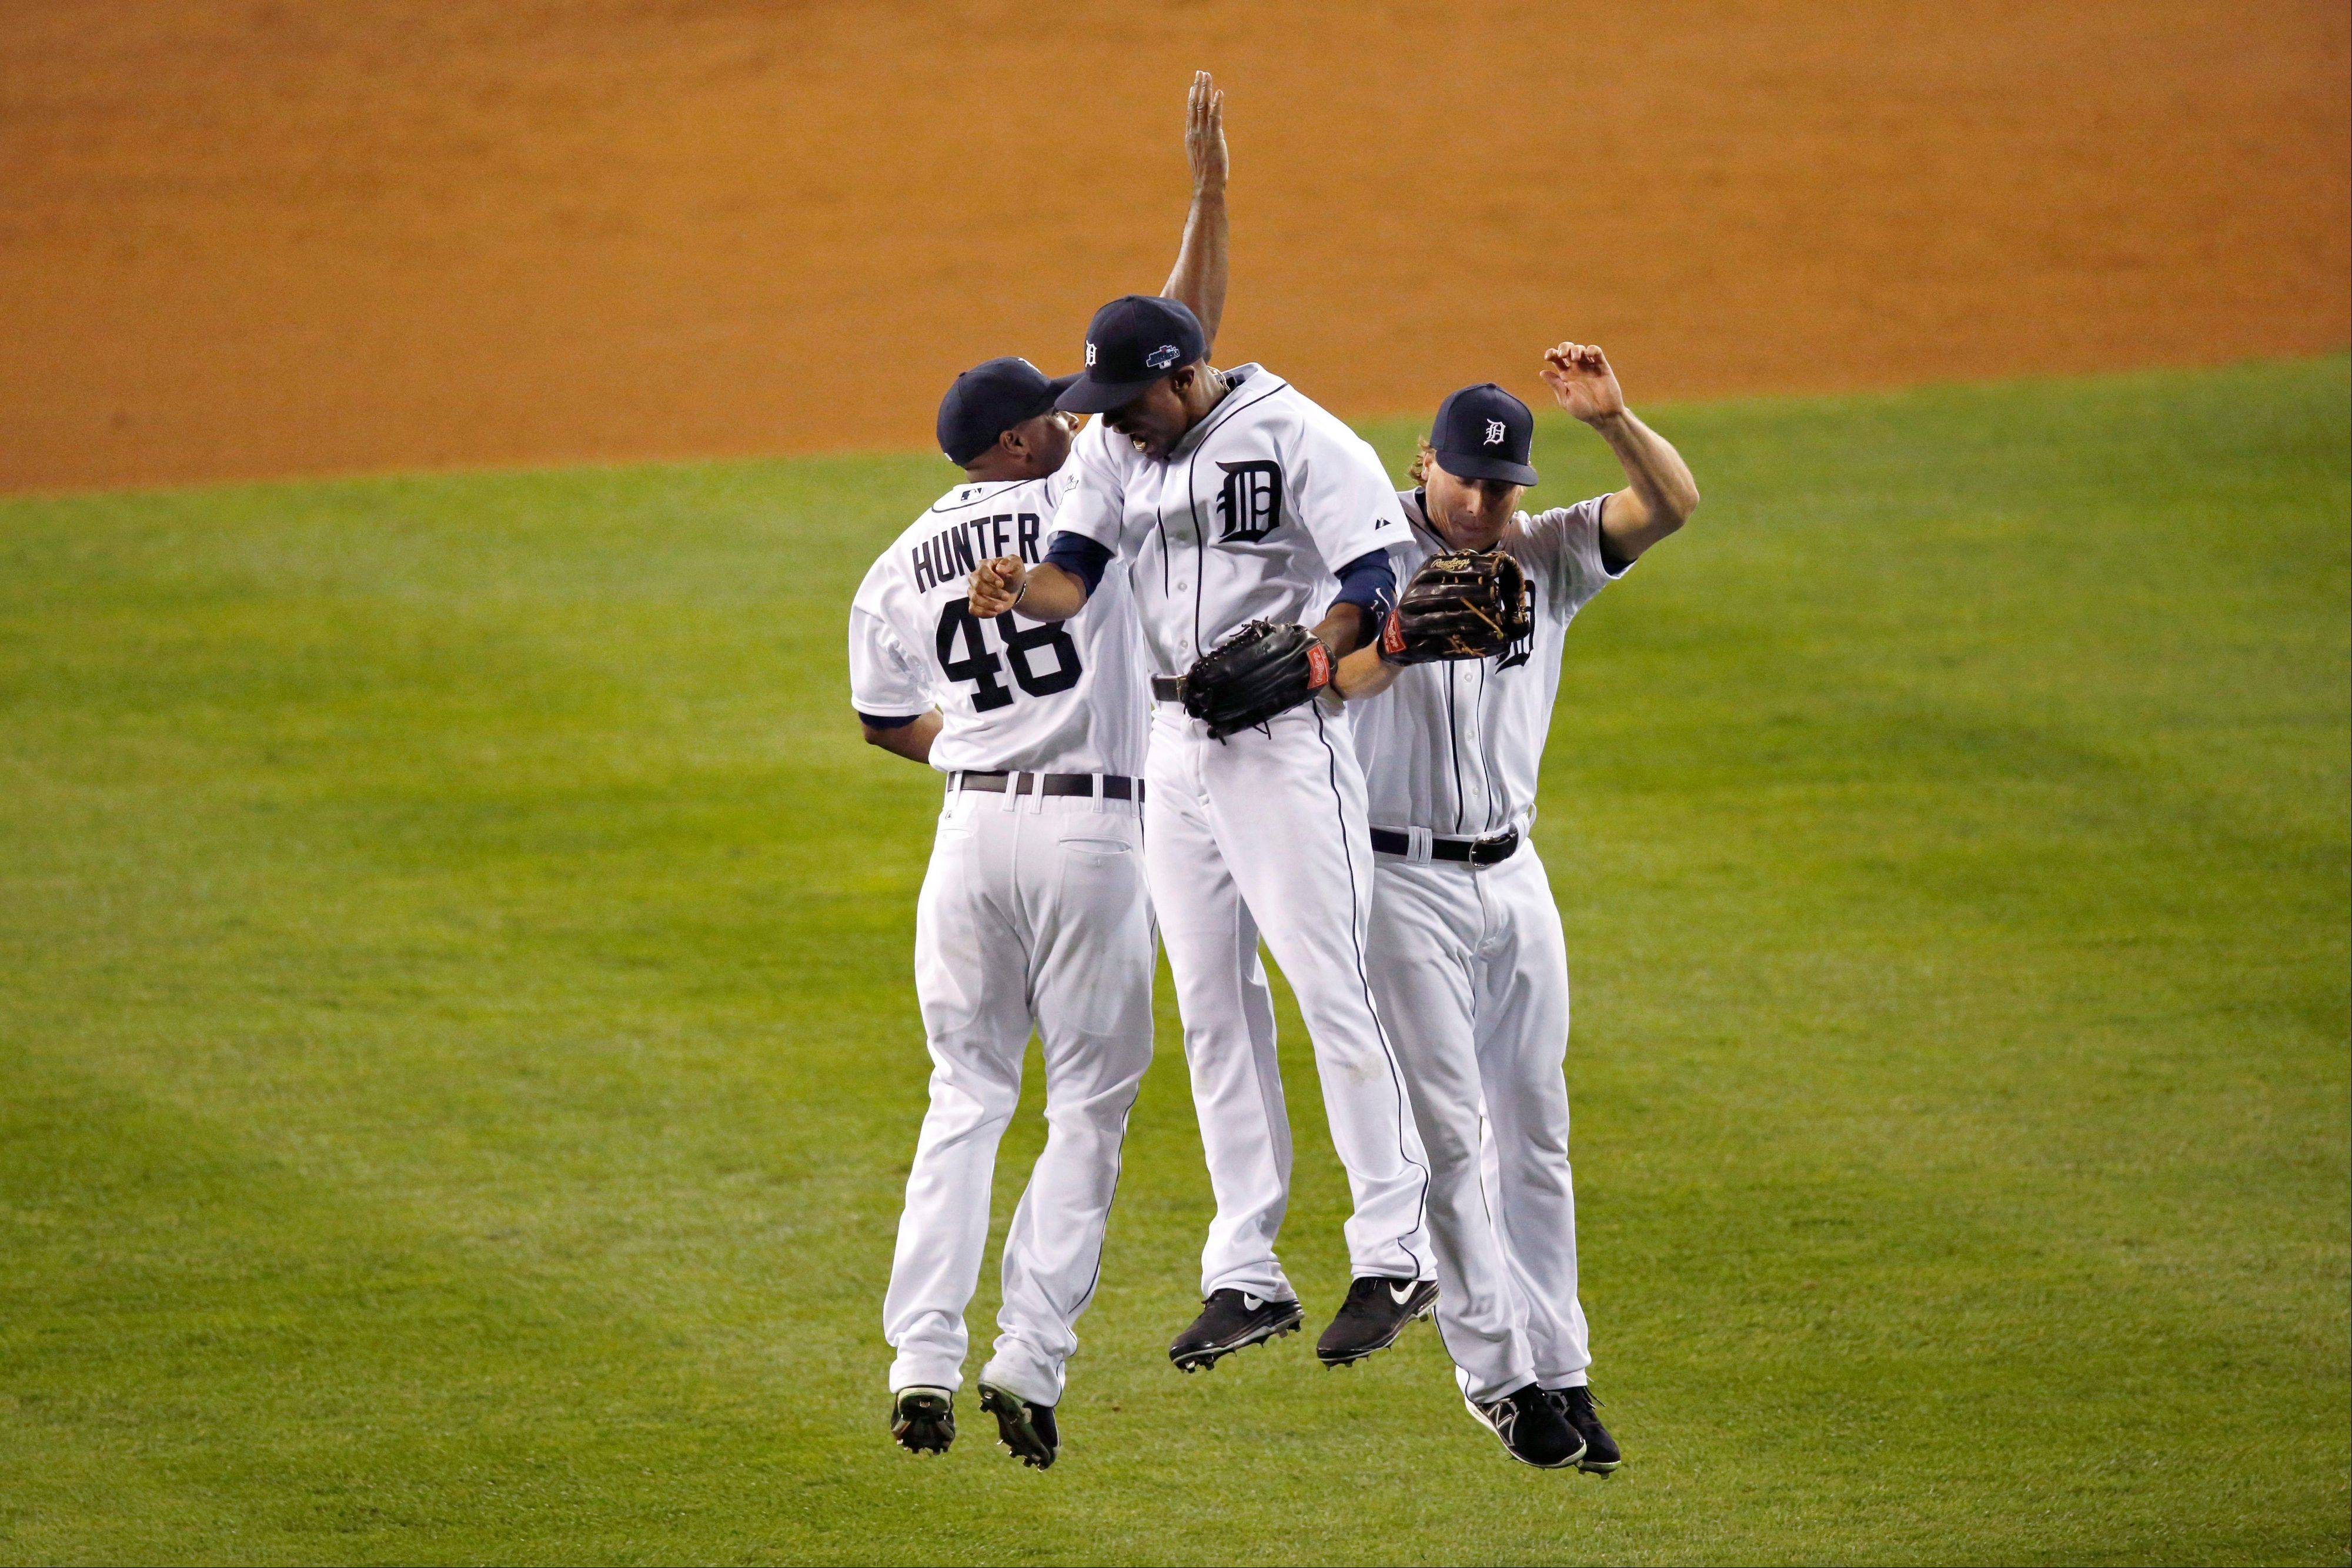 Tigers right fielder Torii Hunter, center fielder Austin Jackson, center, and left fielder Andy Dirks celebrate the Tigers' 8-6 win over the Oakland Athletics in Game 4 of an American League Division Series in Detroit.